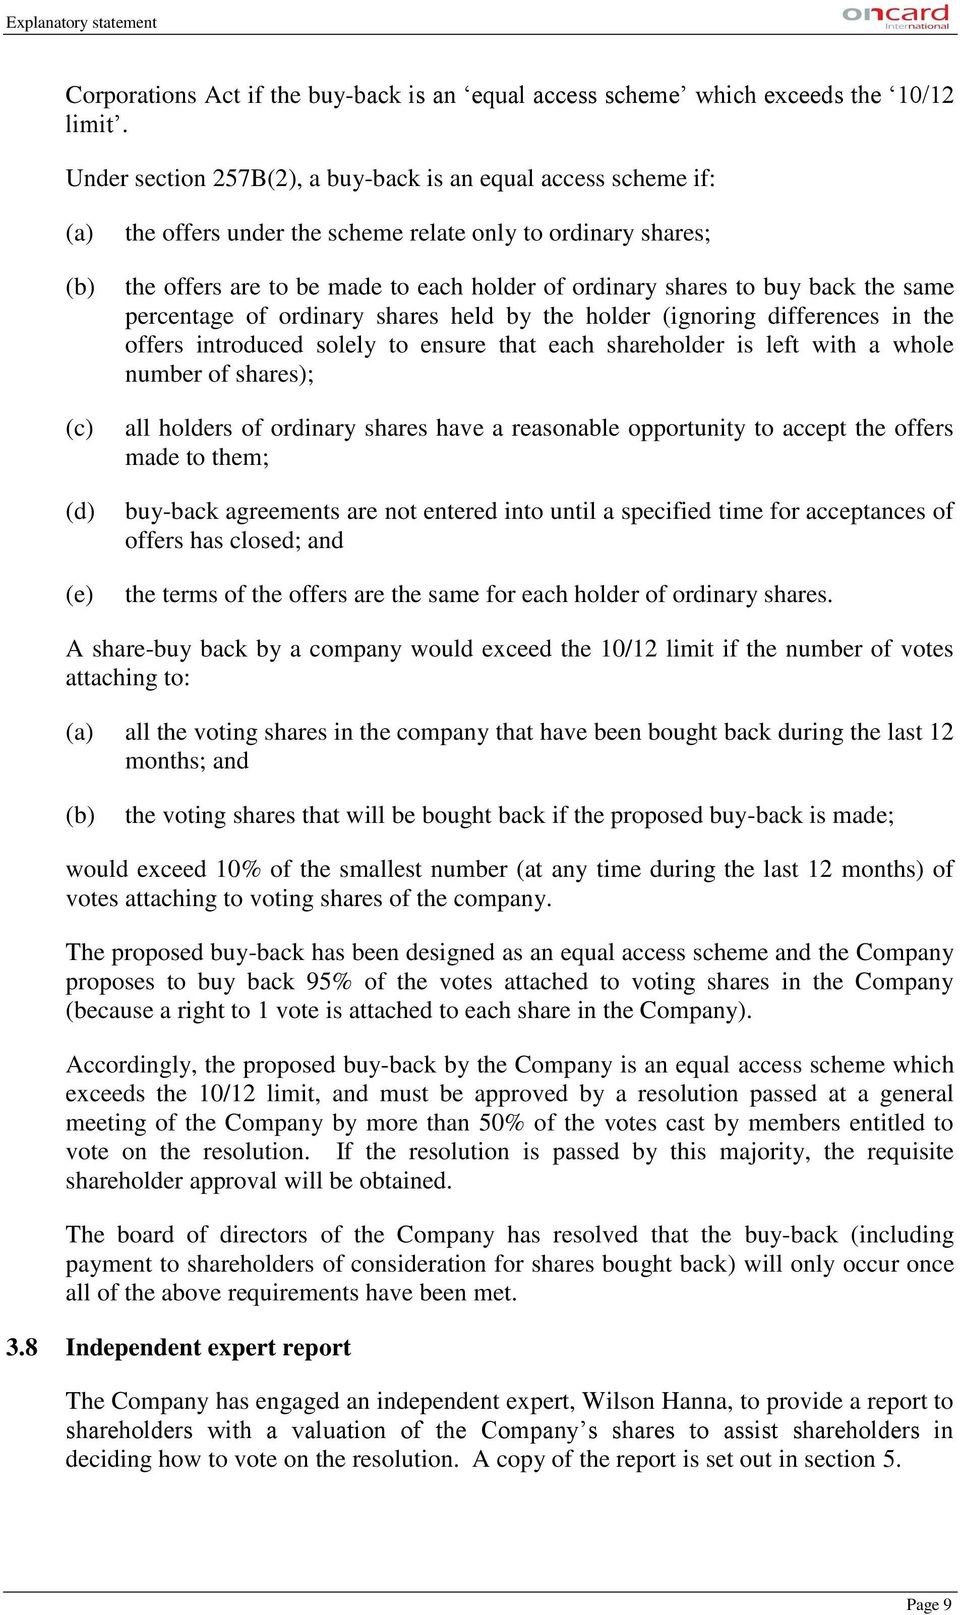 shares to buy back the same percentage of ordinary shares held by the holder (ignoring differences in the offers introduced solely to ensure that each shareholder is left with a whole number of